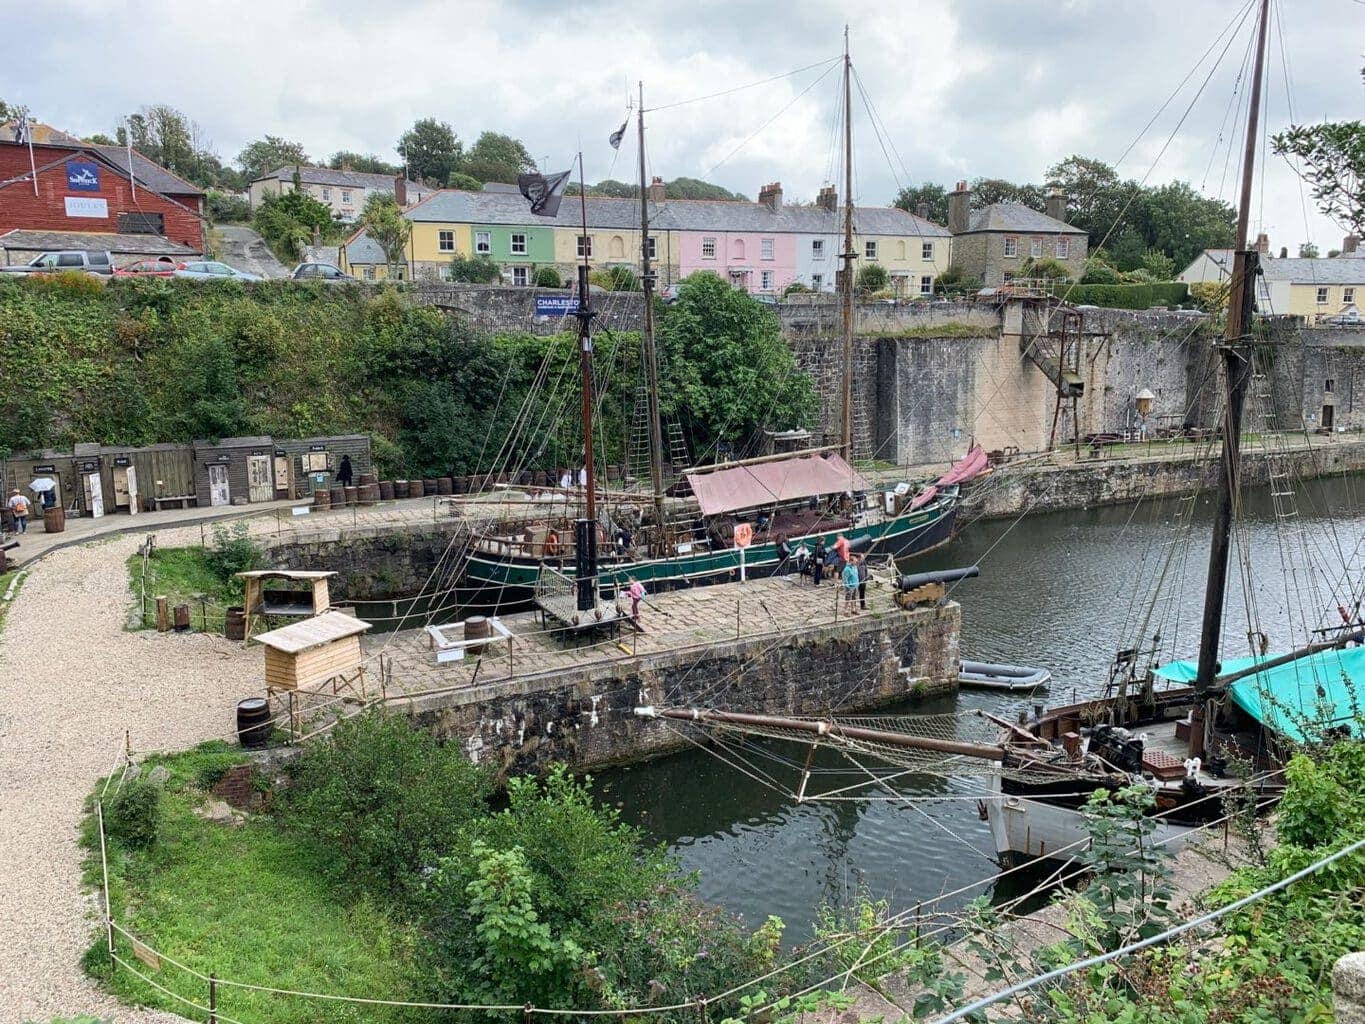 Charlestown Harbour and Shipwreck Museum, St Austell Cornwall